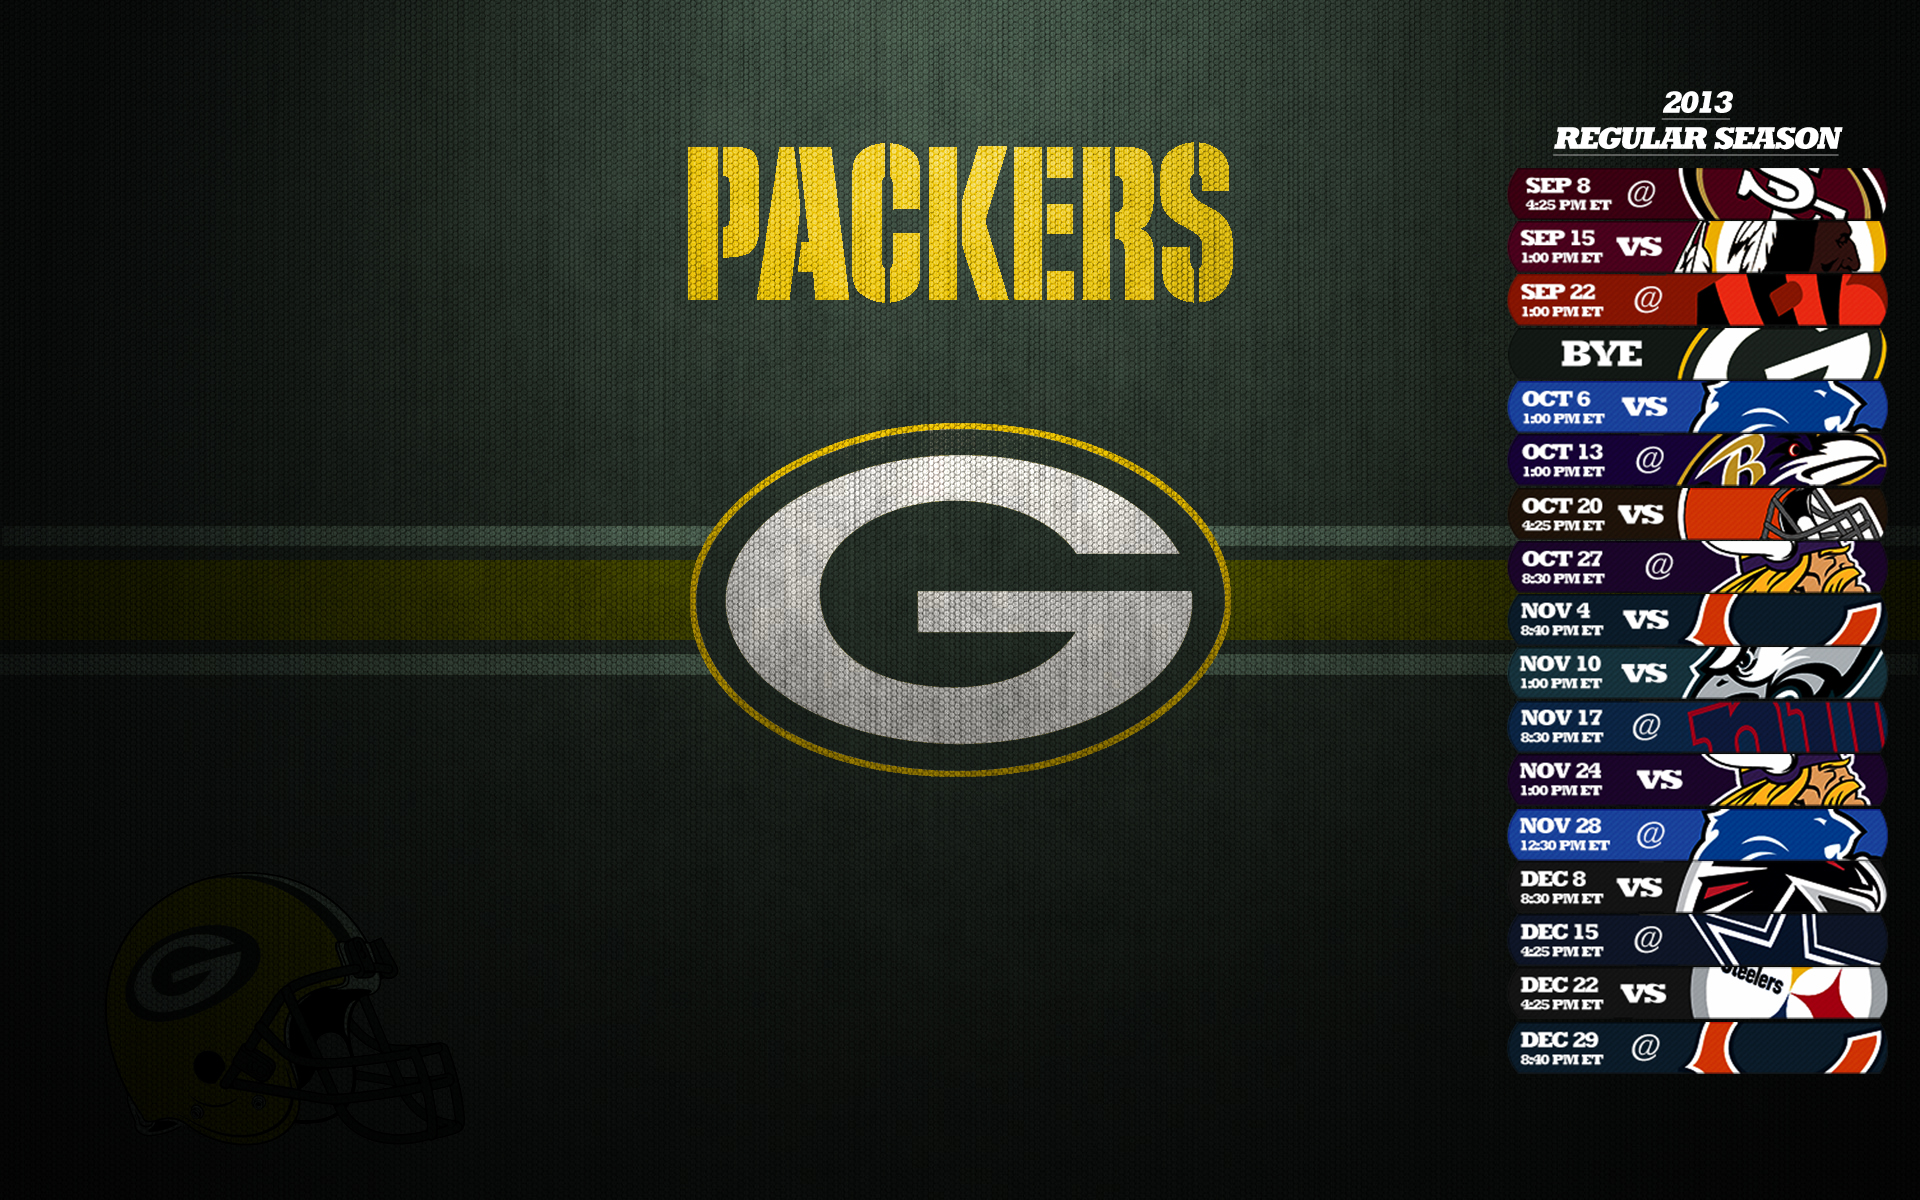 green bay packers images green bay packers schedule 2013 wallpaper hd wallpaper and background photos